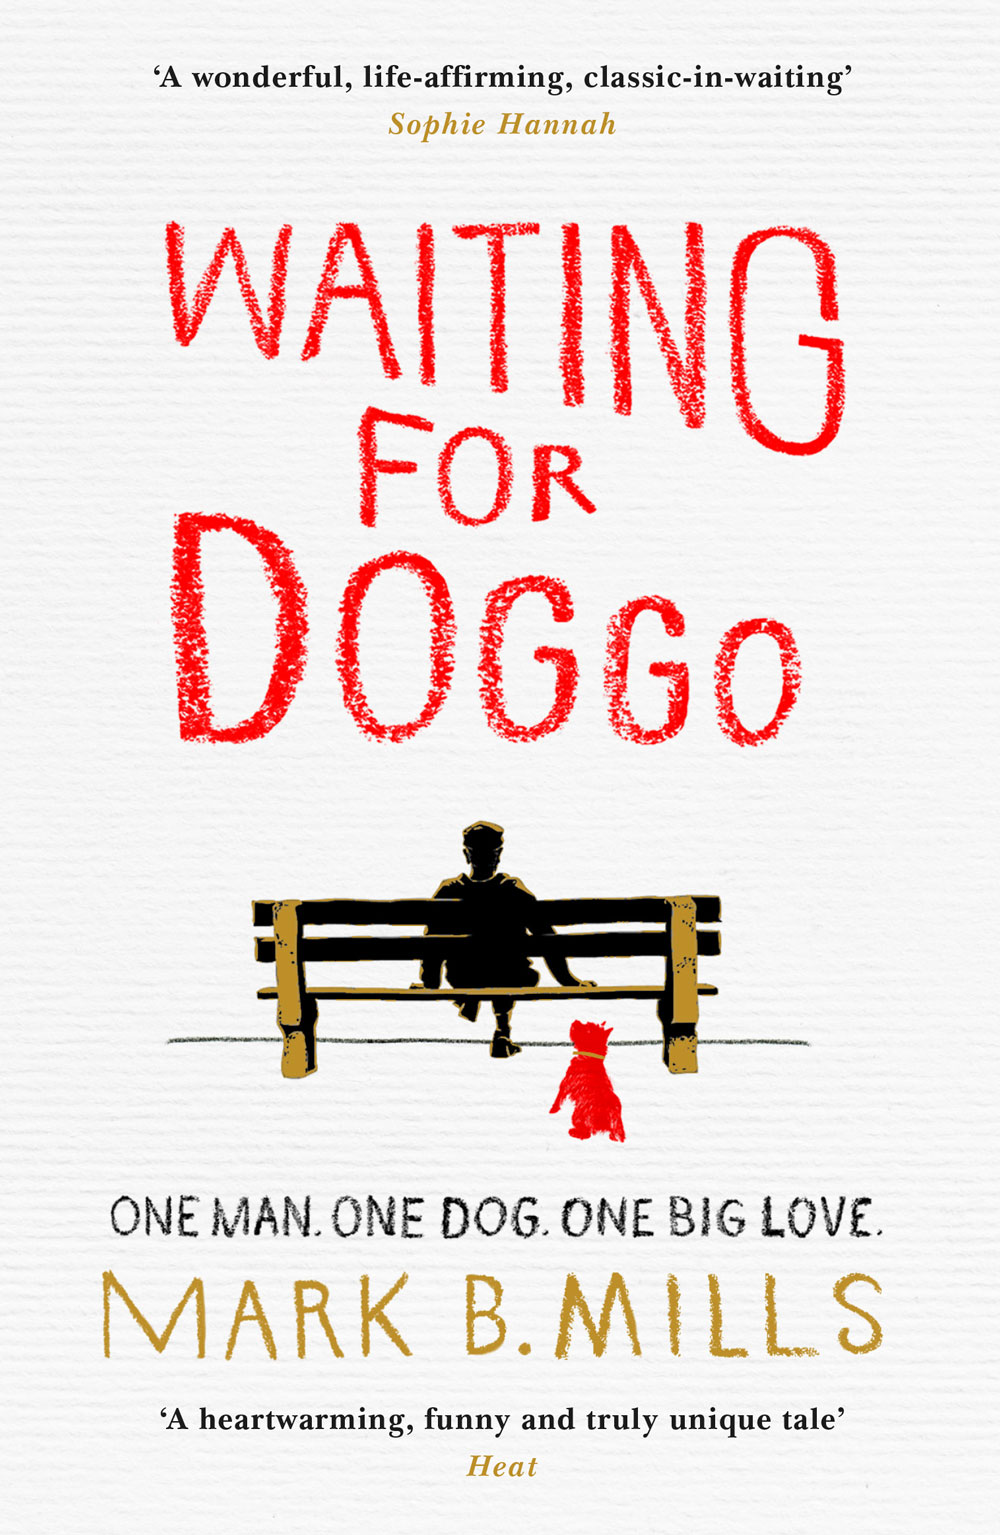 Waiting for Doggo book cover illustration by Jason Stout